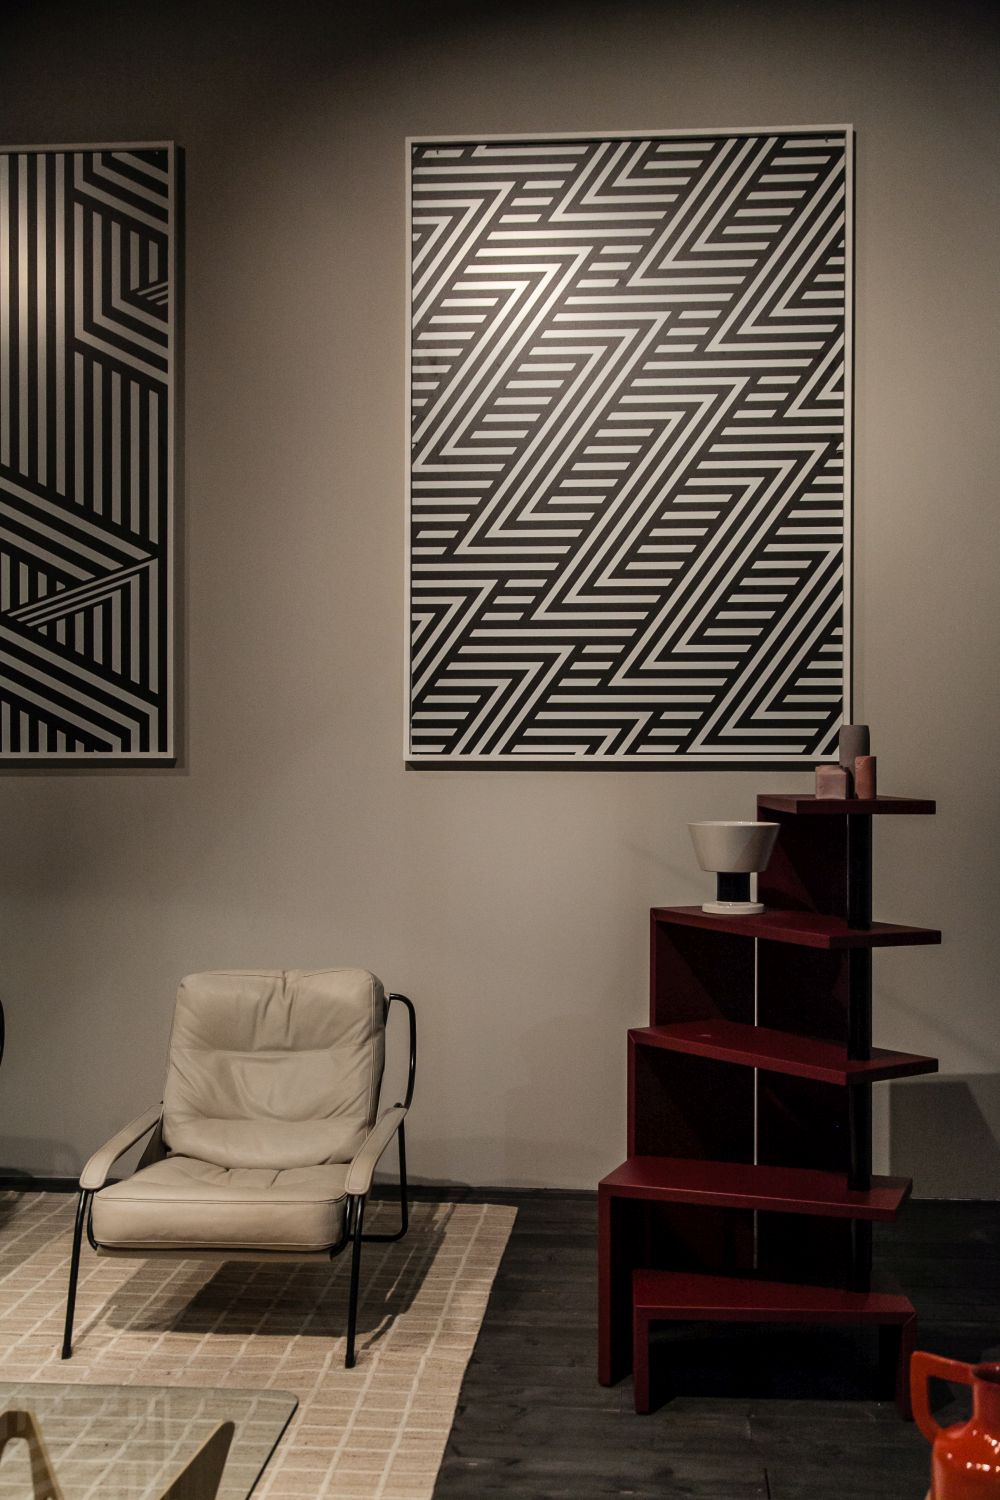 1560941272 242 fun wall designs to turn a blank space into a terrific decor element - Fun Wall Designs To Turn a Blank Space into a Terrific Decor Element